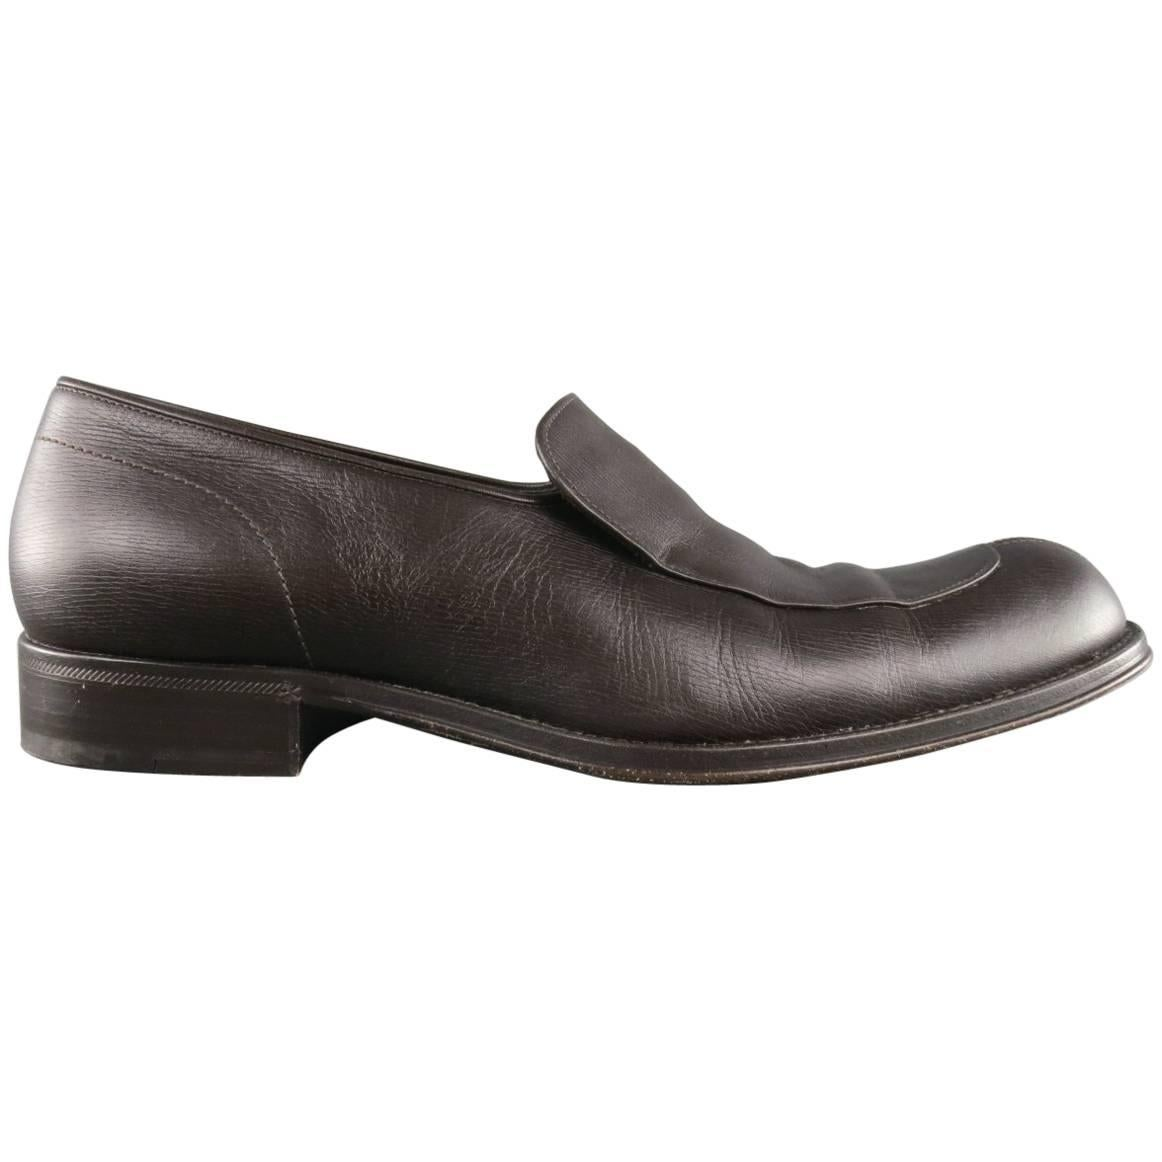 e48bb4e94858 Men s GIORGIO ARMANI Shoes - Size 9.5 Brown Leather Split Apron Toe Loafers  For Sale at 1stdibs